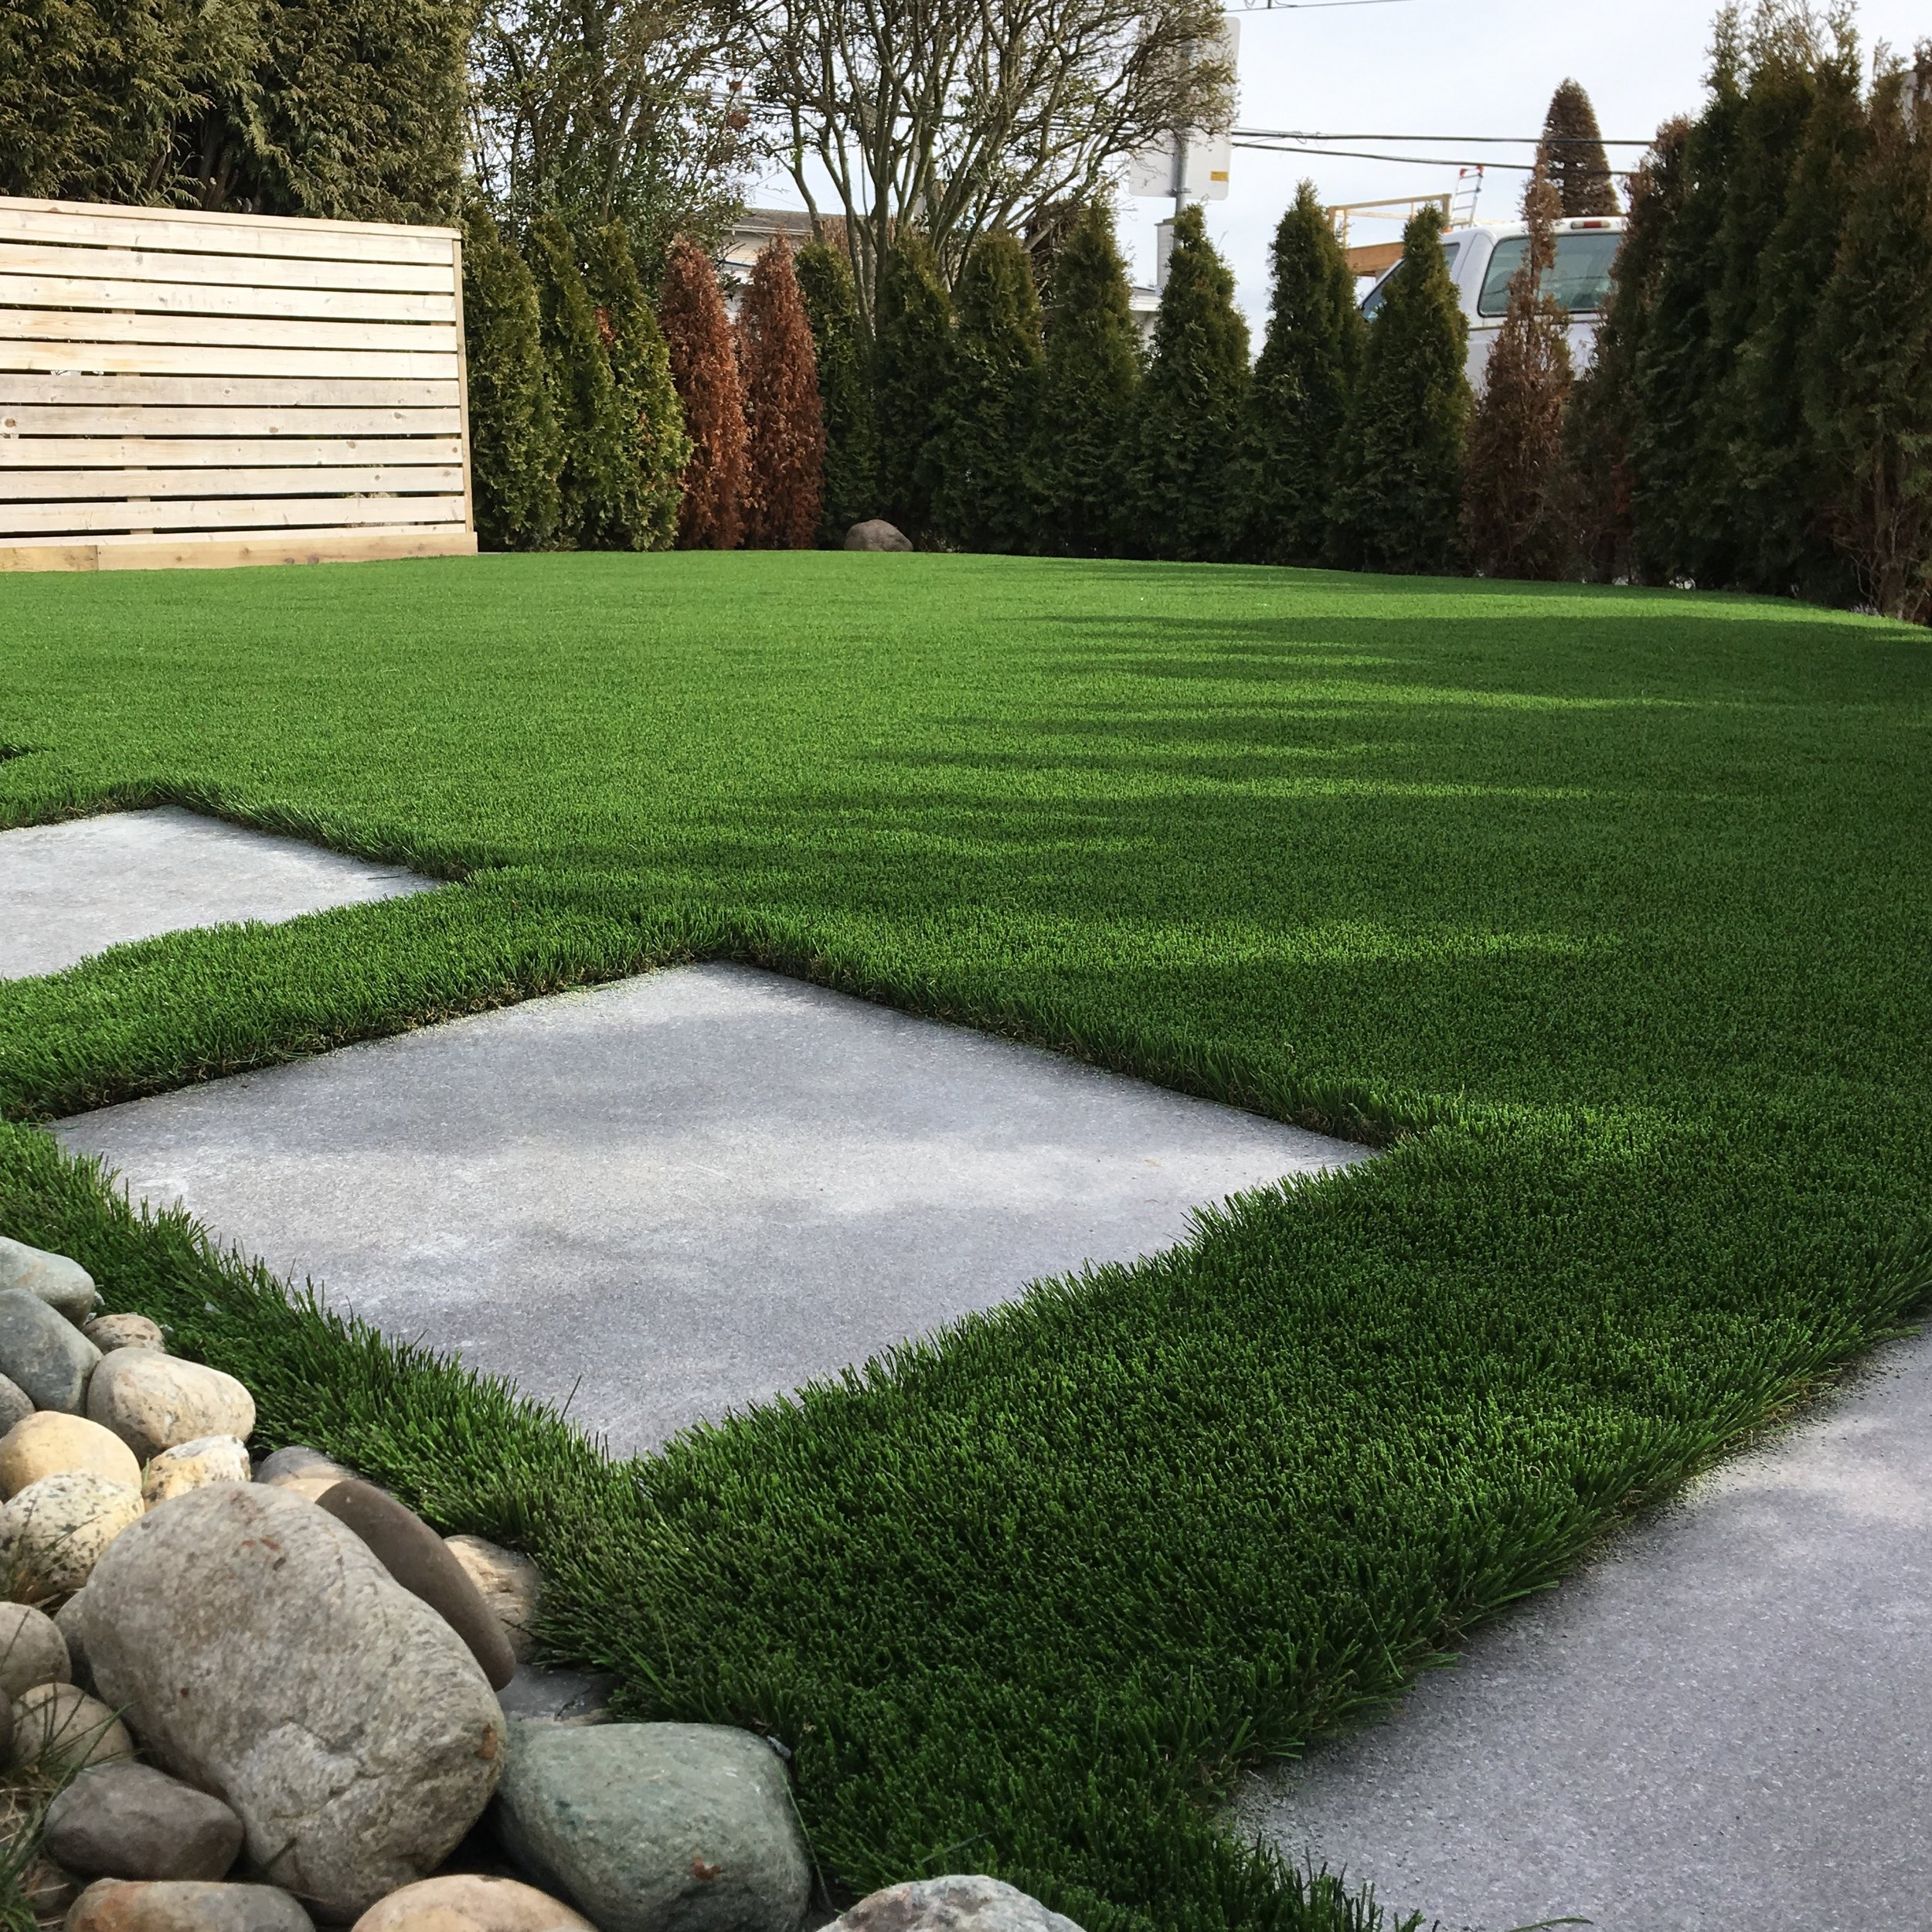 REALISTIC AND DURABLE - Our synthetic grass is soft and luscious — feeling and looking just like real grass, even your dogs can't tell the difference. High quality synthetic grass has a long product life time of 15 years.